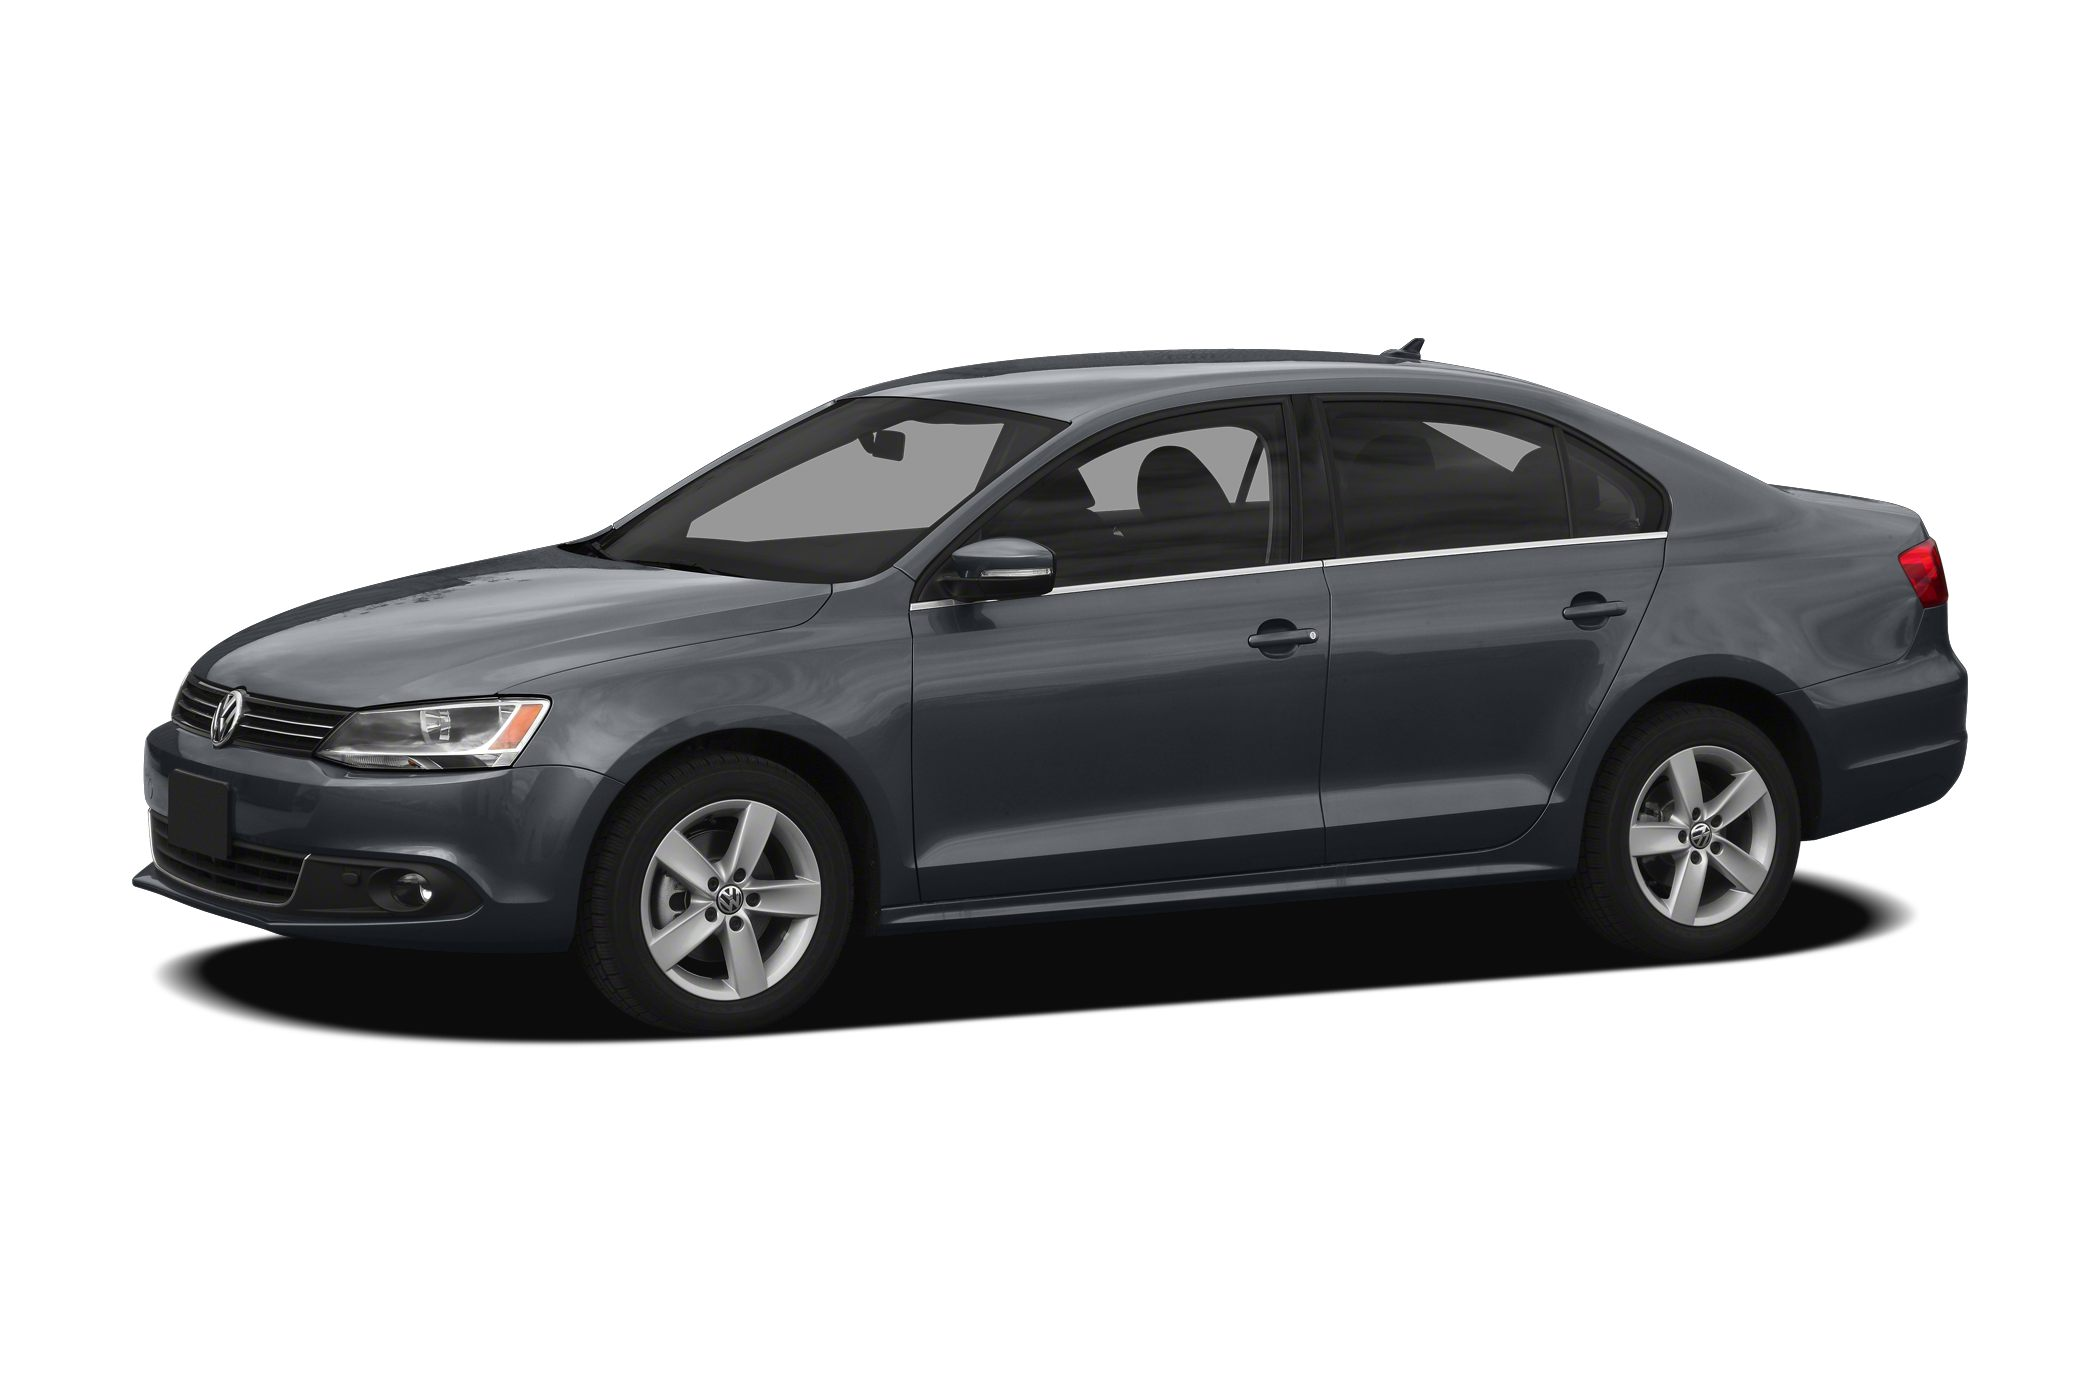 2011 Volkswagen Jetta TDI Sedan for sale in Parkersburg for $16,989 with 59,298 miles.